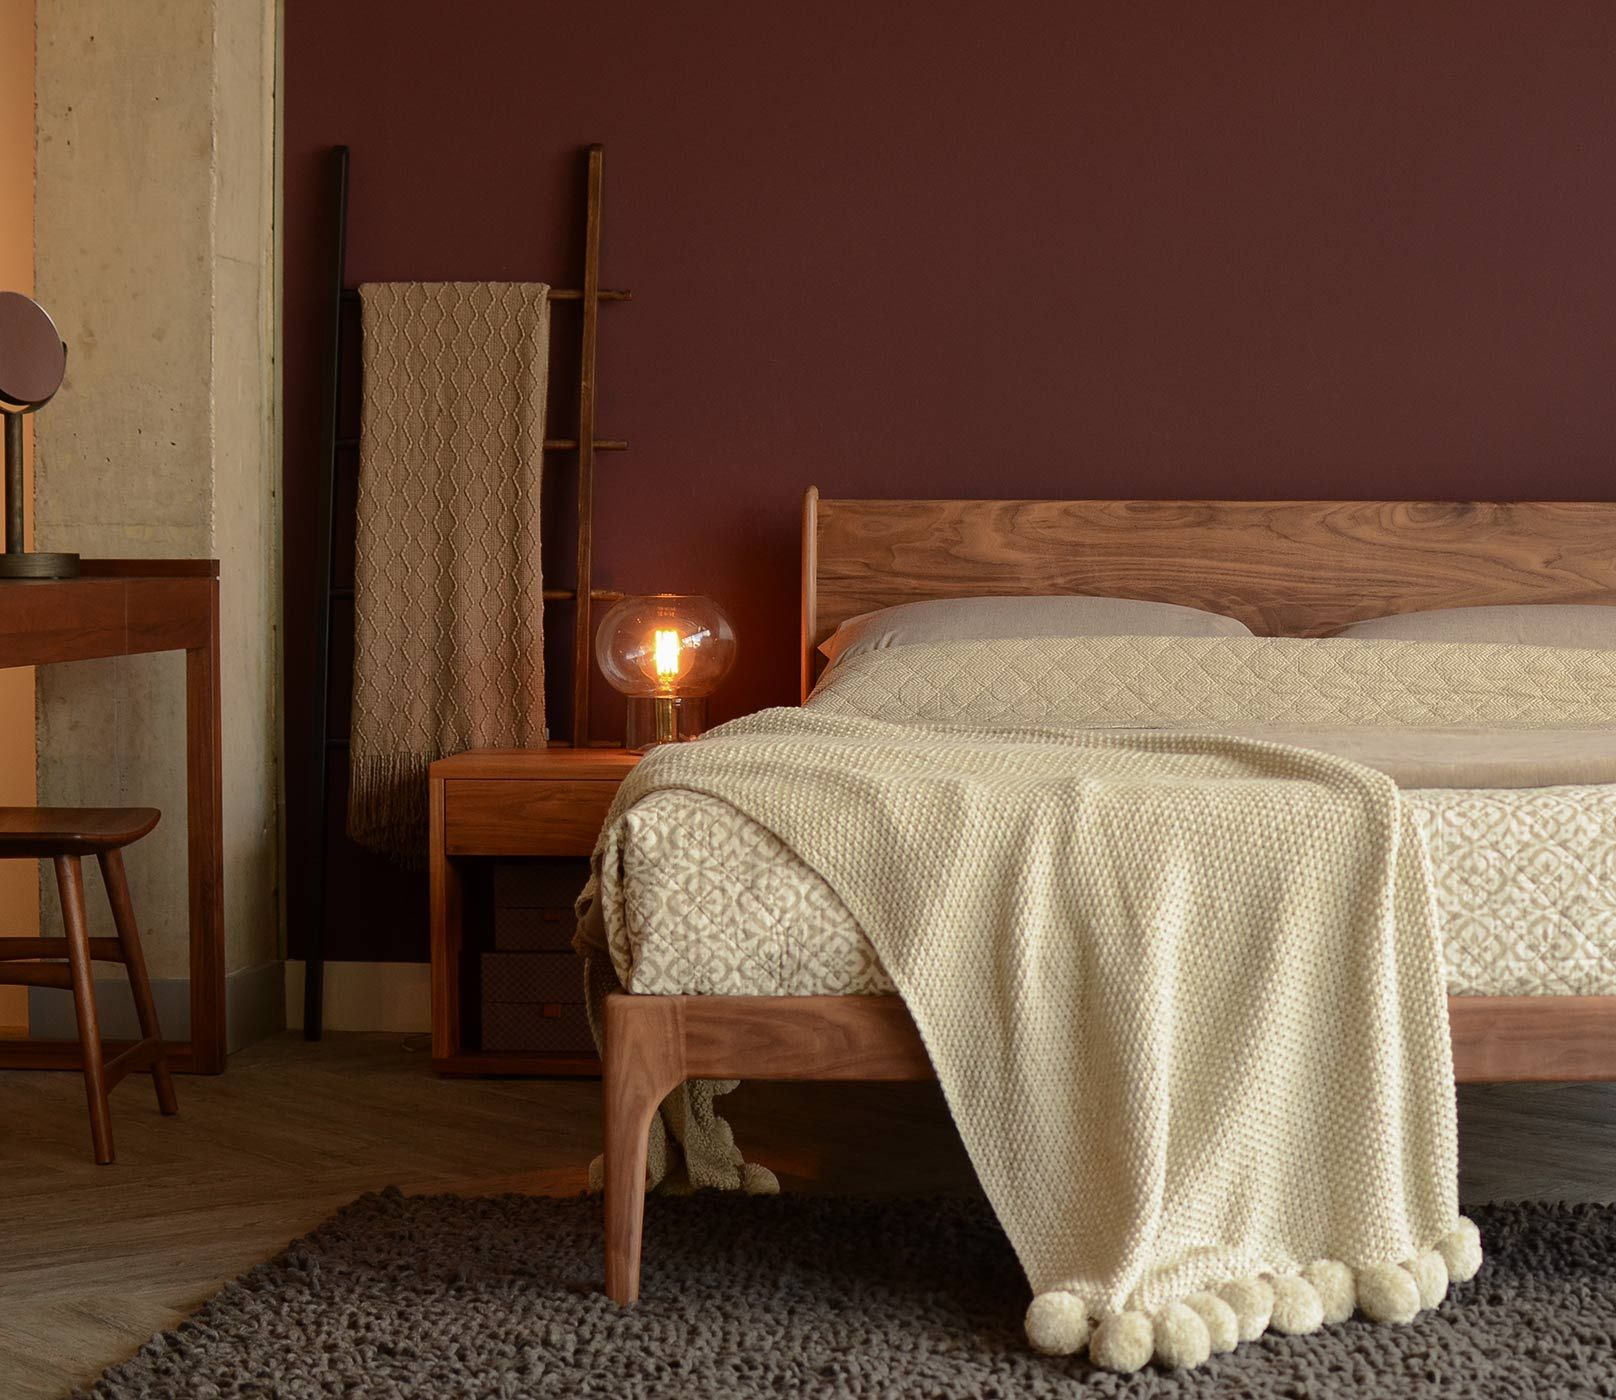 Walnut bedroom furniture the camden bed original cube table and